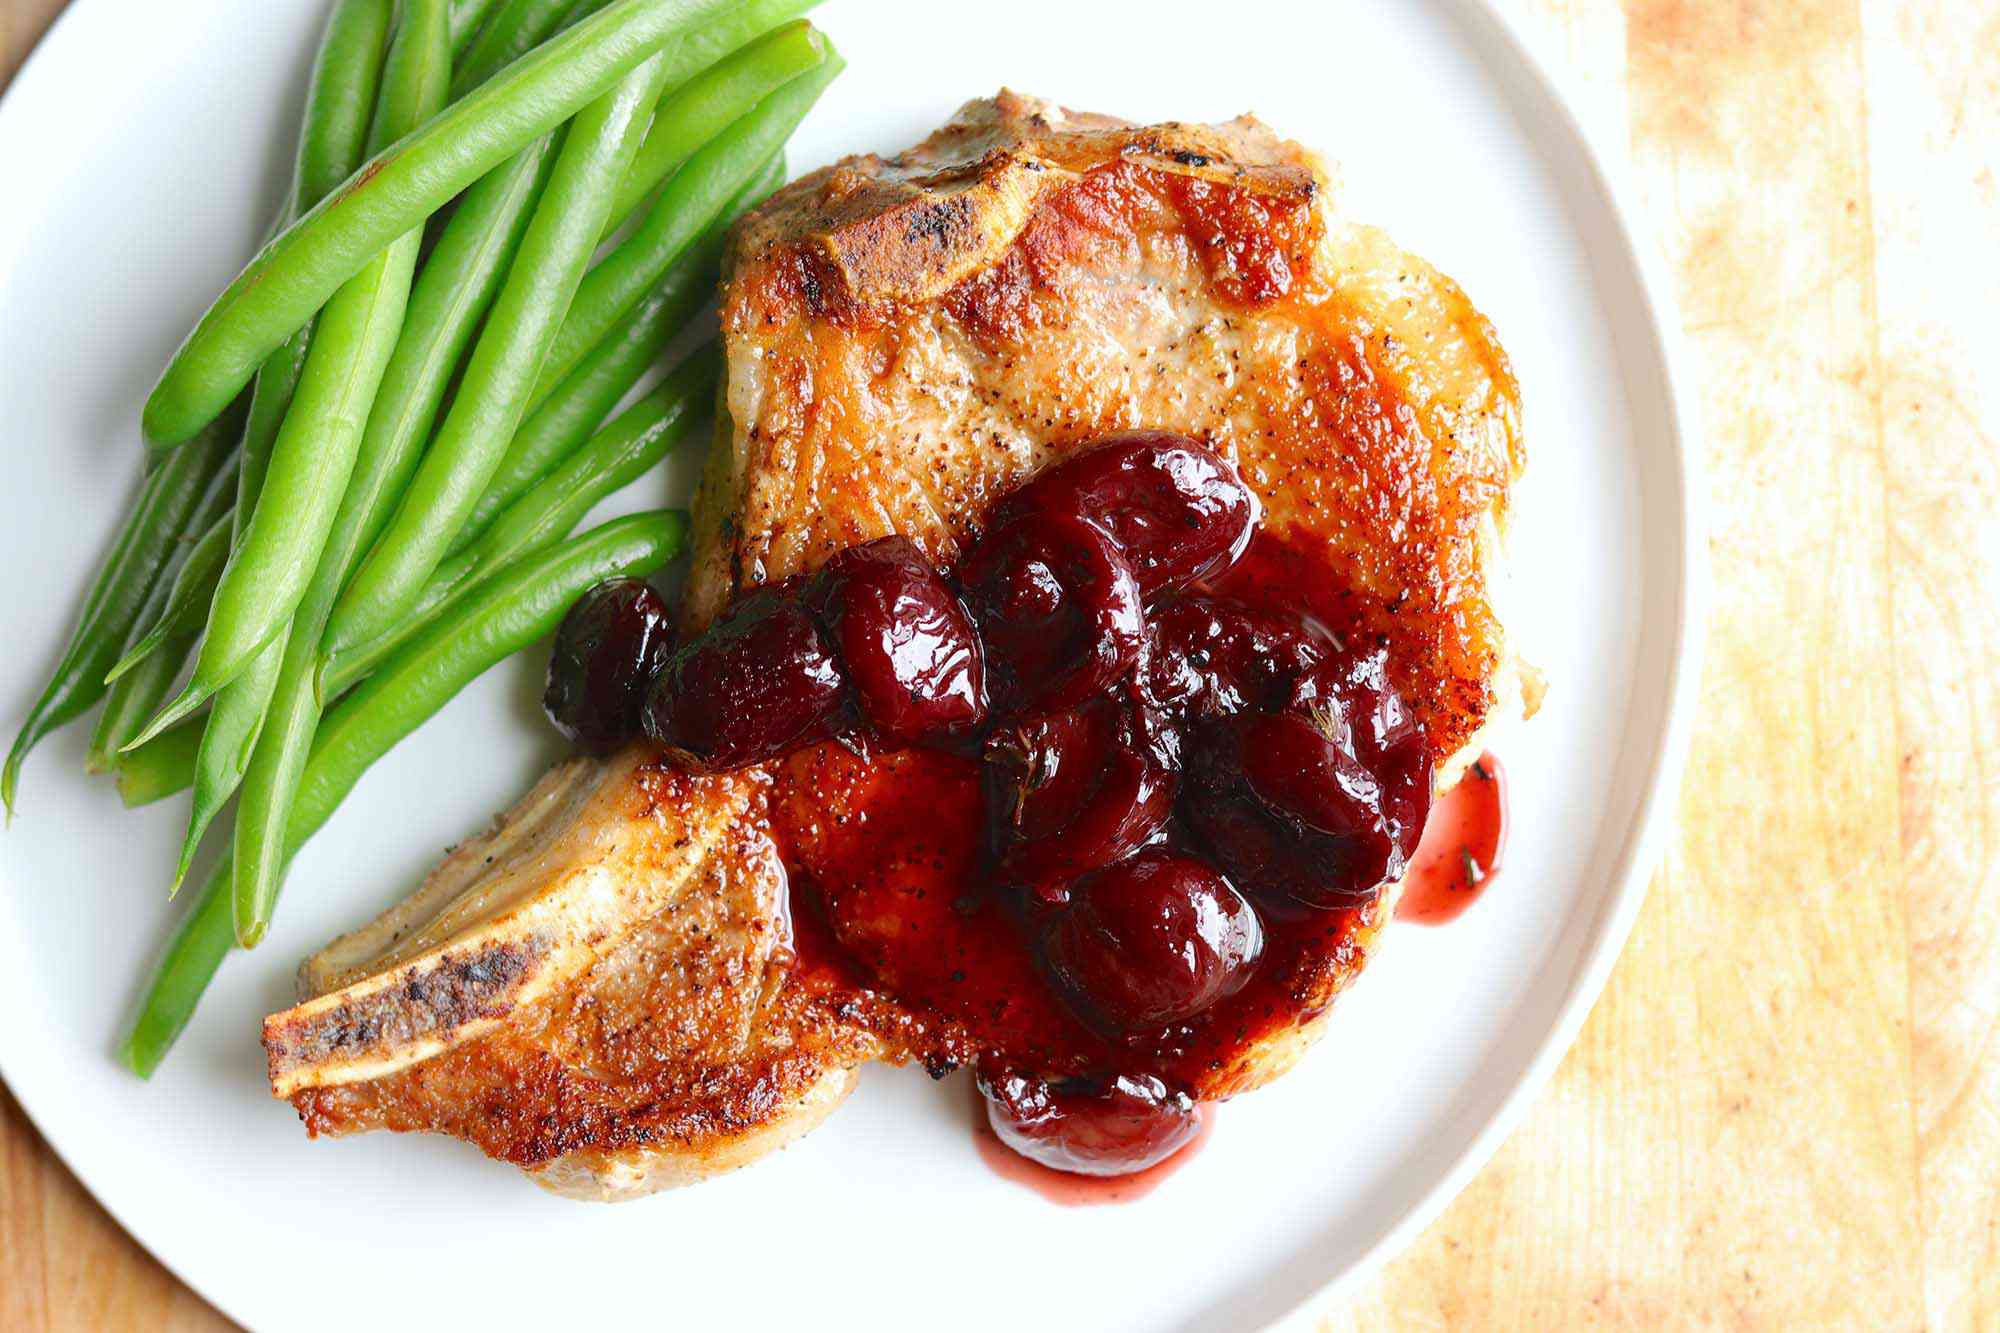 a seared porkchop with cherry sauce alongside a serving of green beans